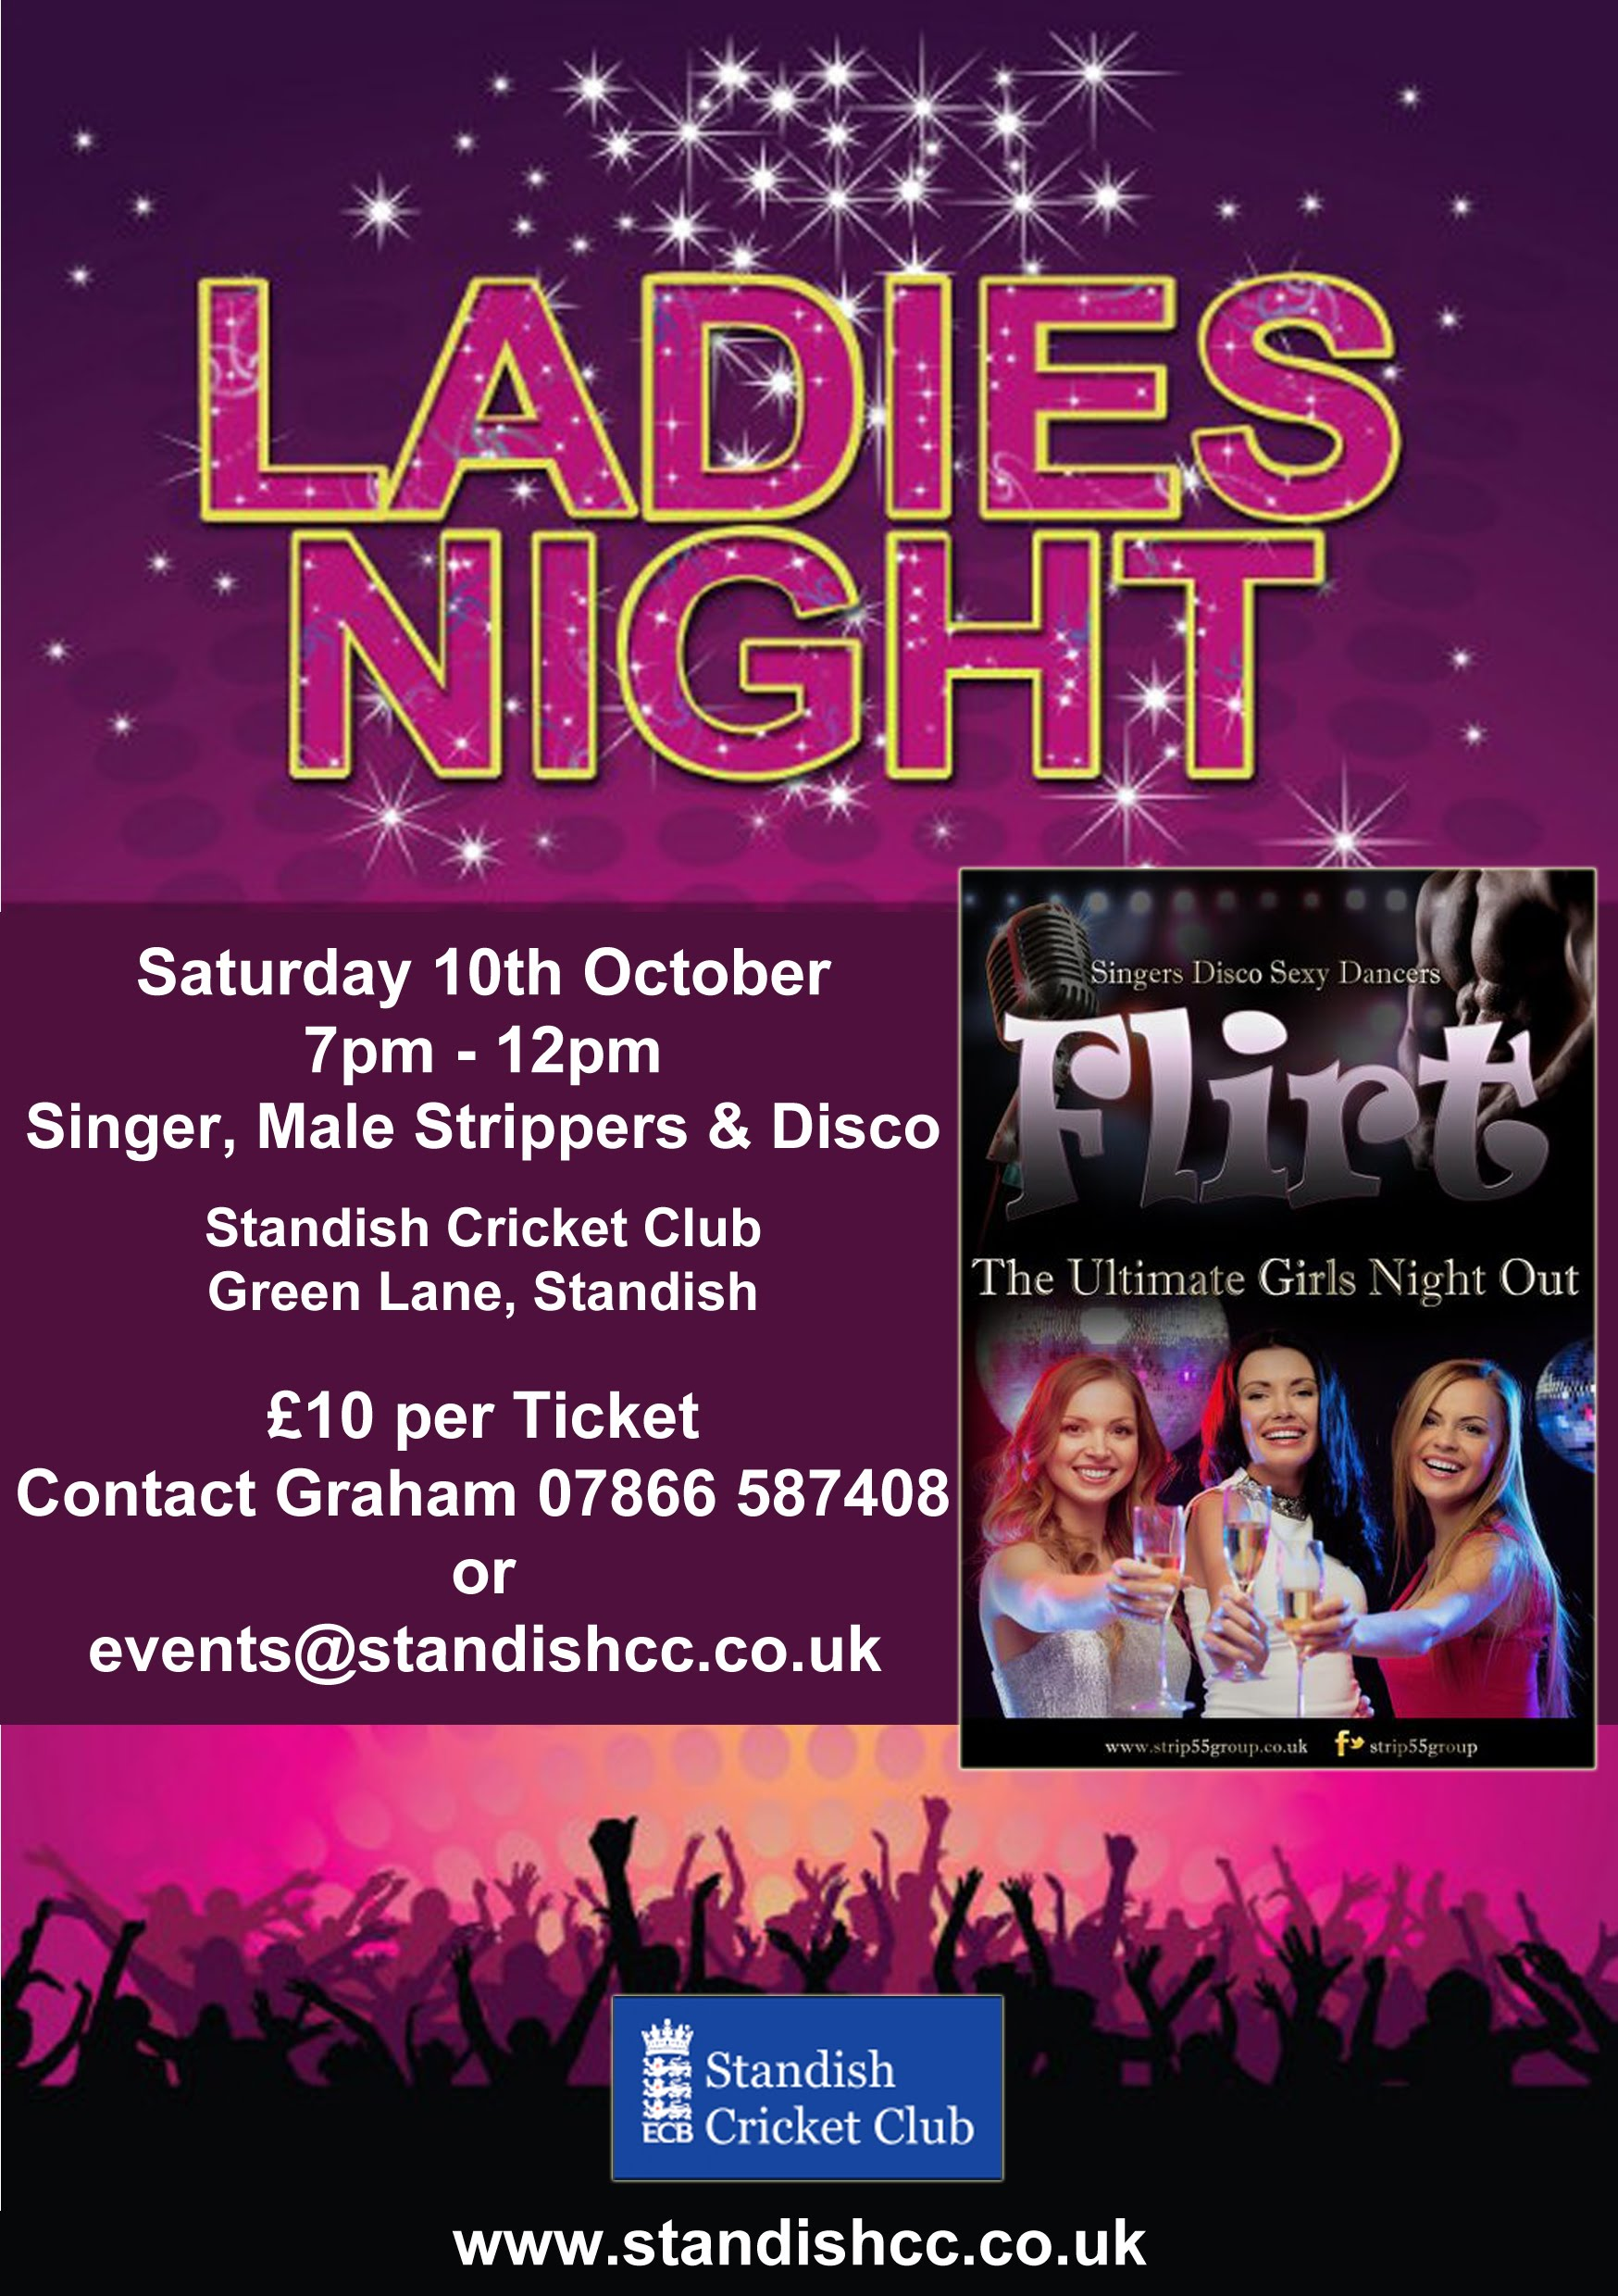 Ladies night at Standish Cricket Club